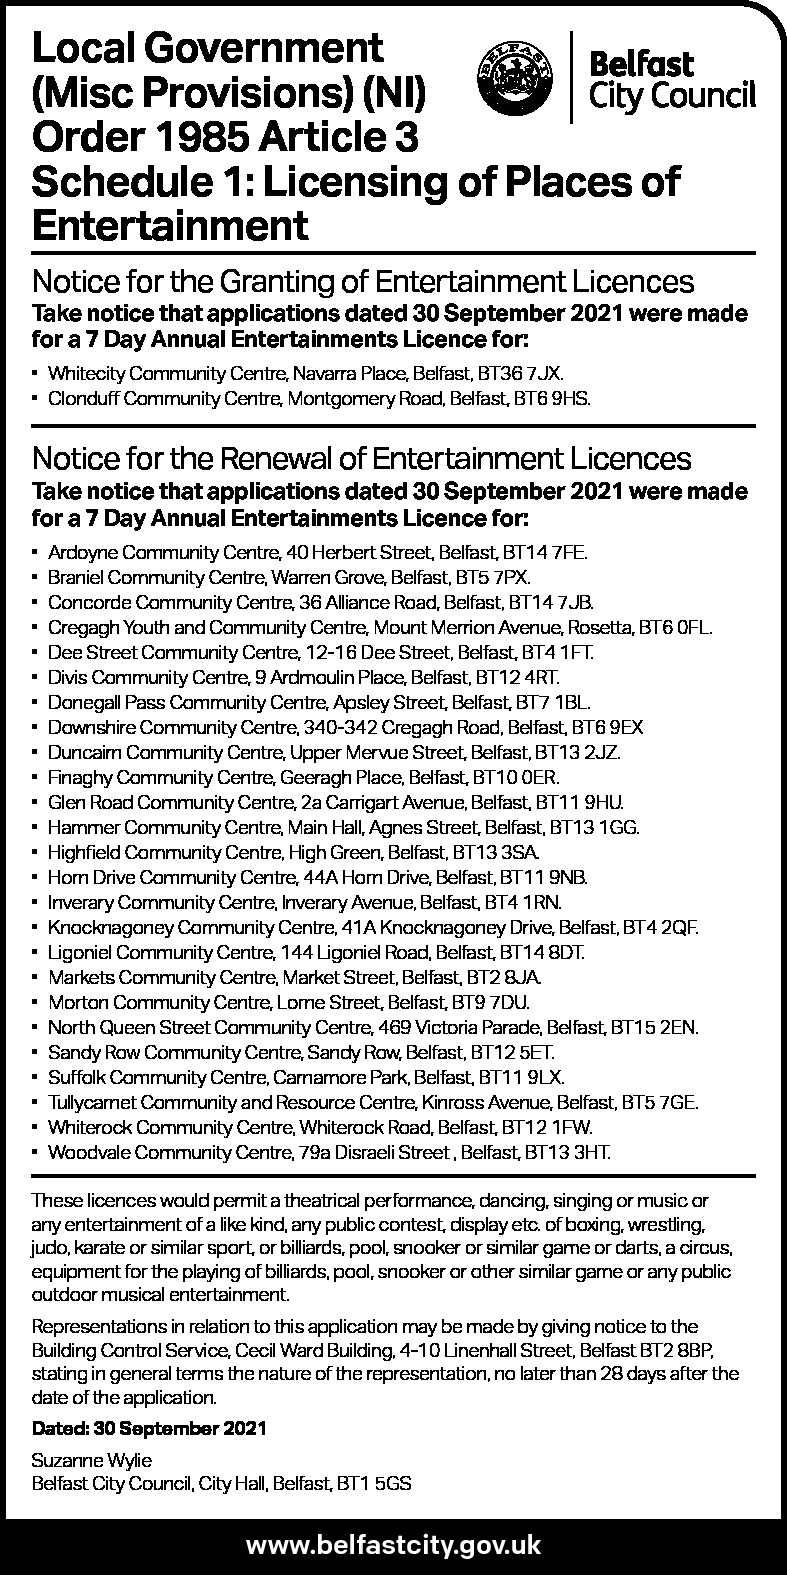 Licensing of Places of Entertainment